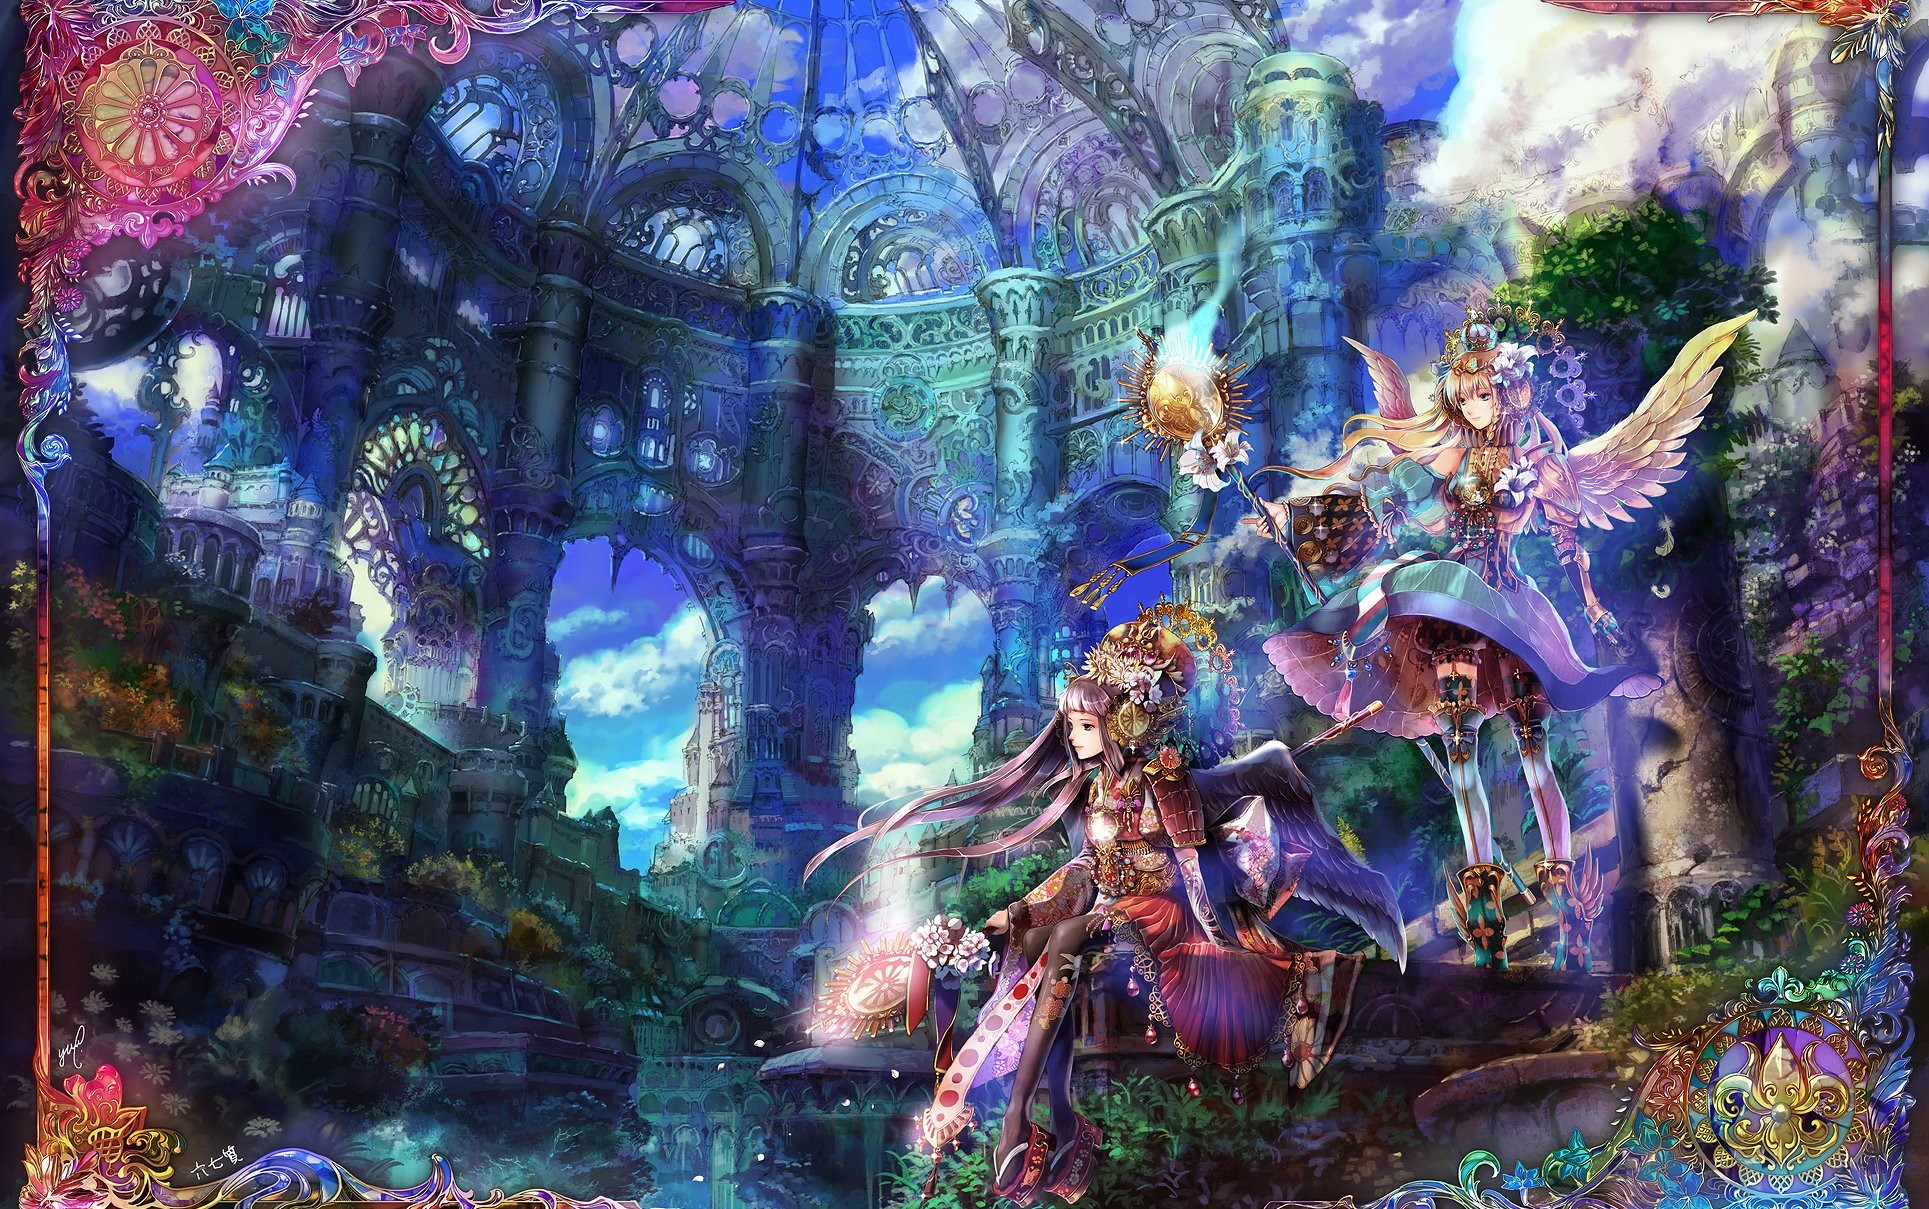 Anime Fantasy Art Wallpapers Hd Desktop And Mobile: Anime Fantasy Wallpaper (74+ Images